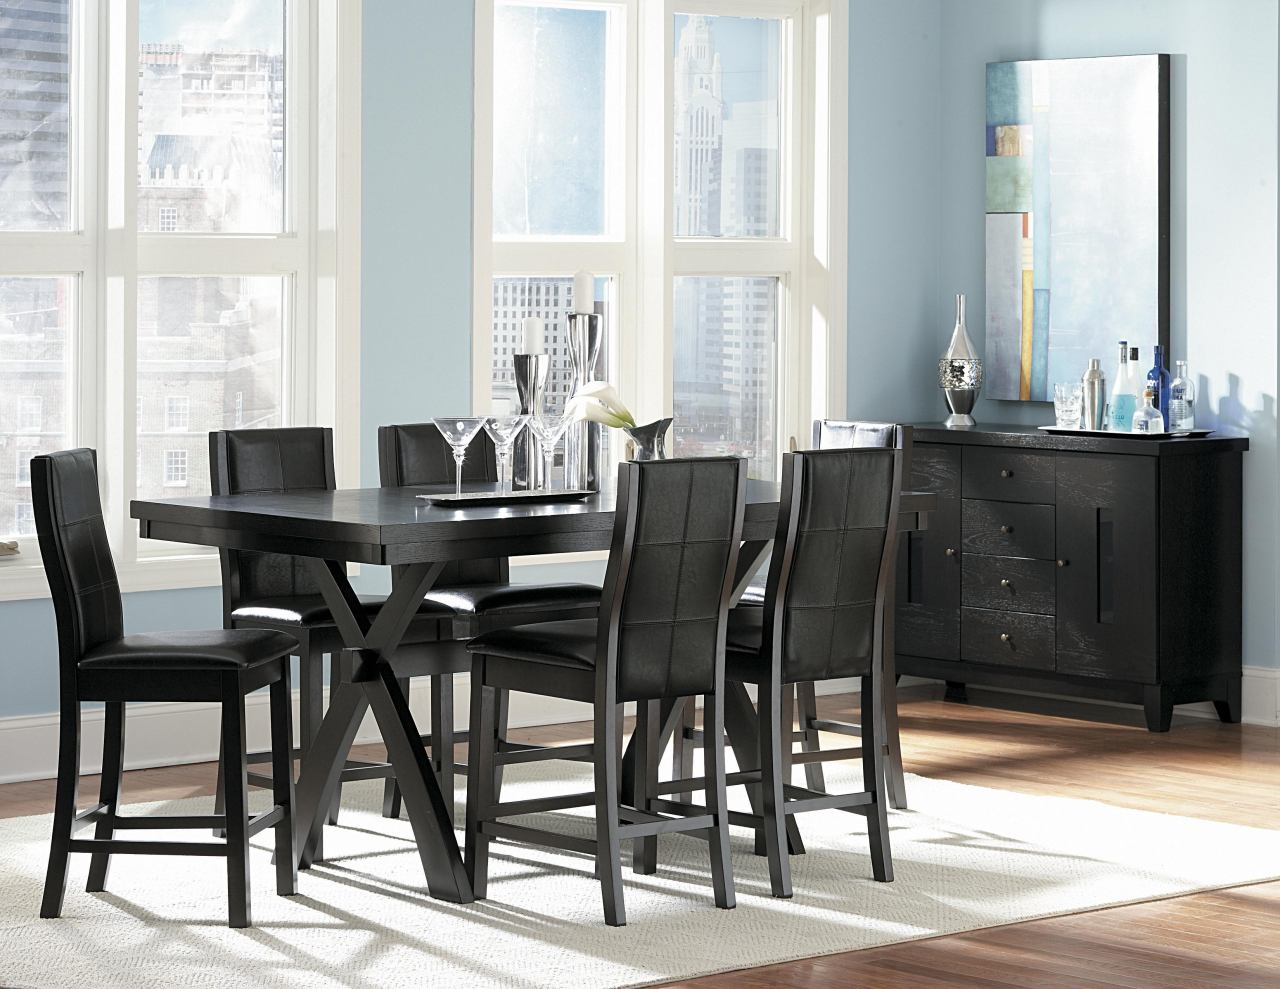 Homelegance Rigby 7pc Counter Height Table Set in Espresso